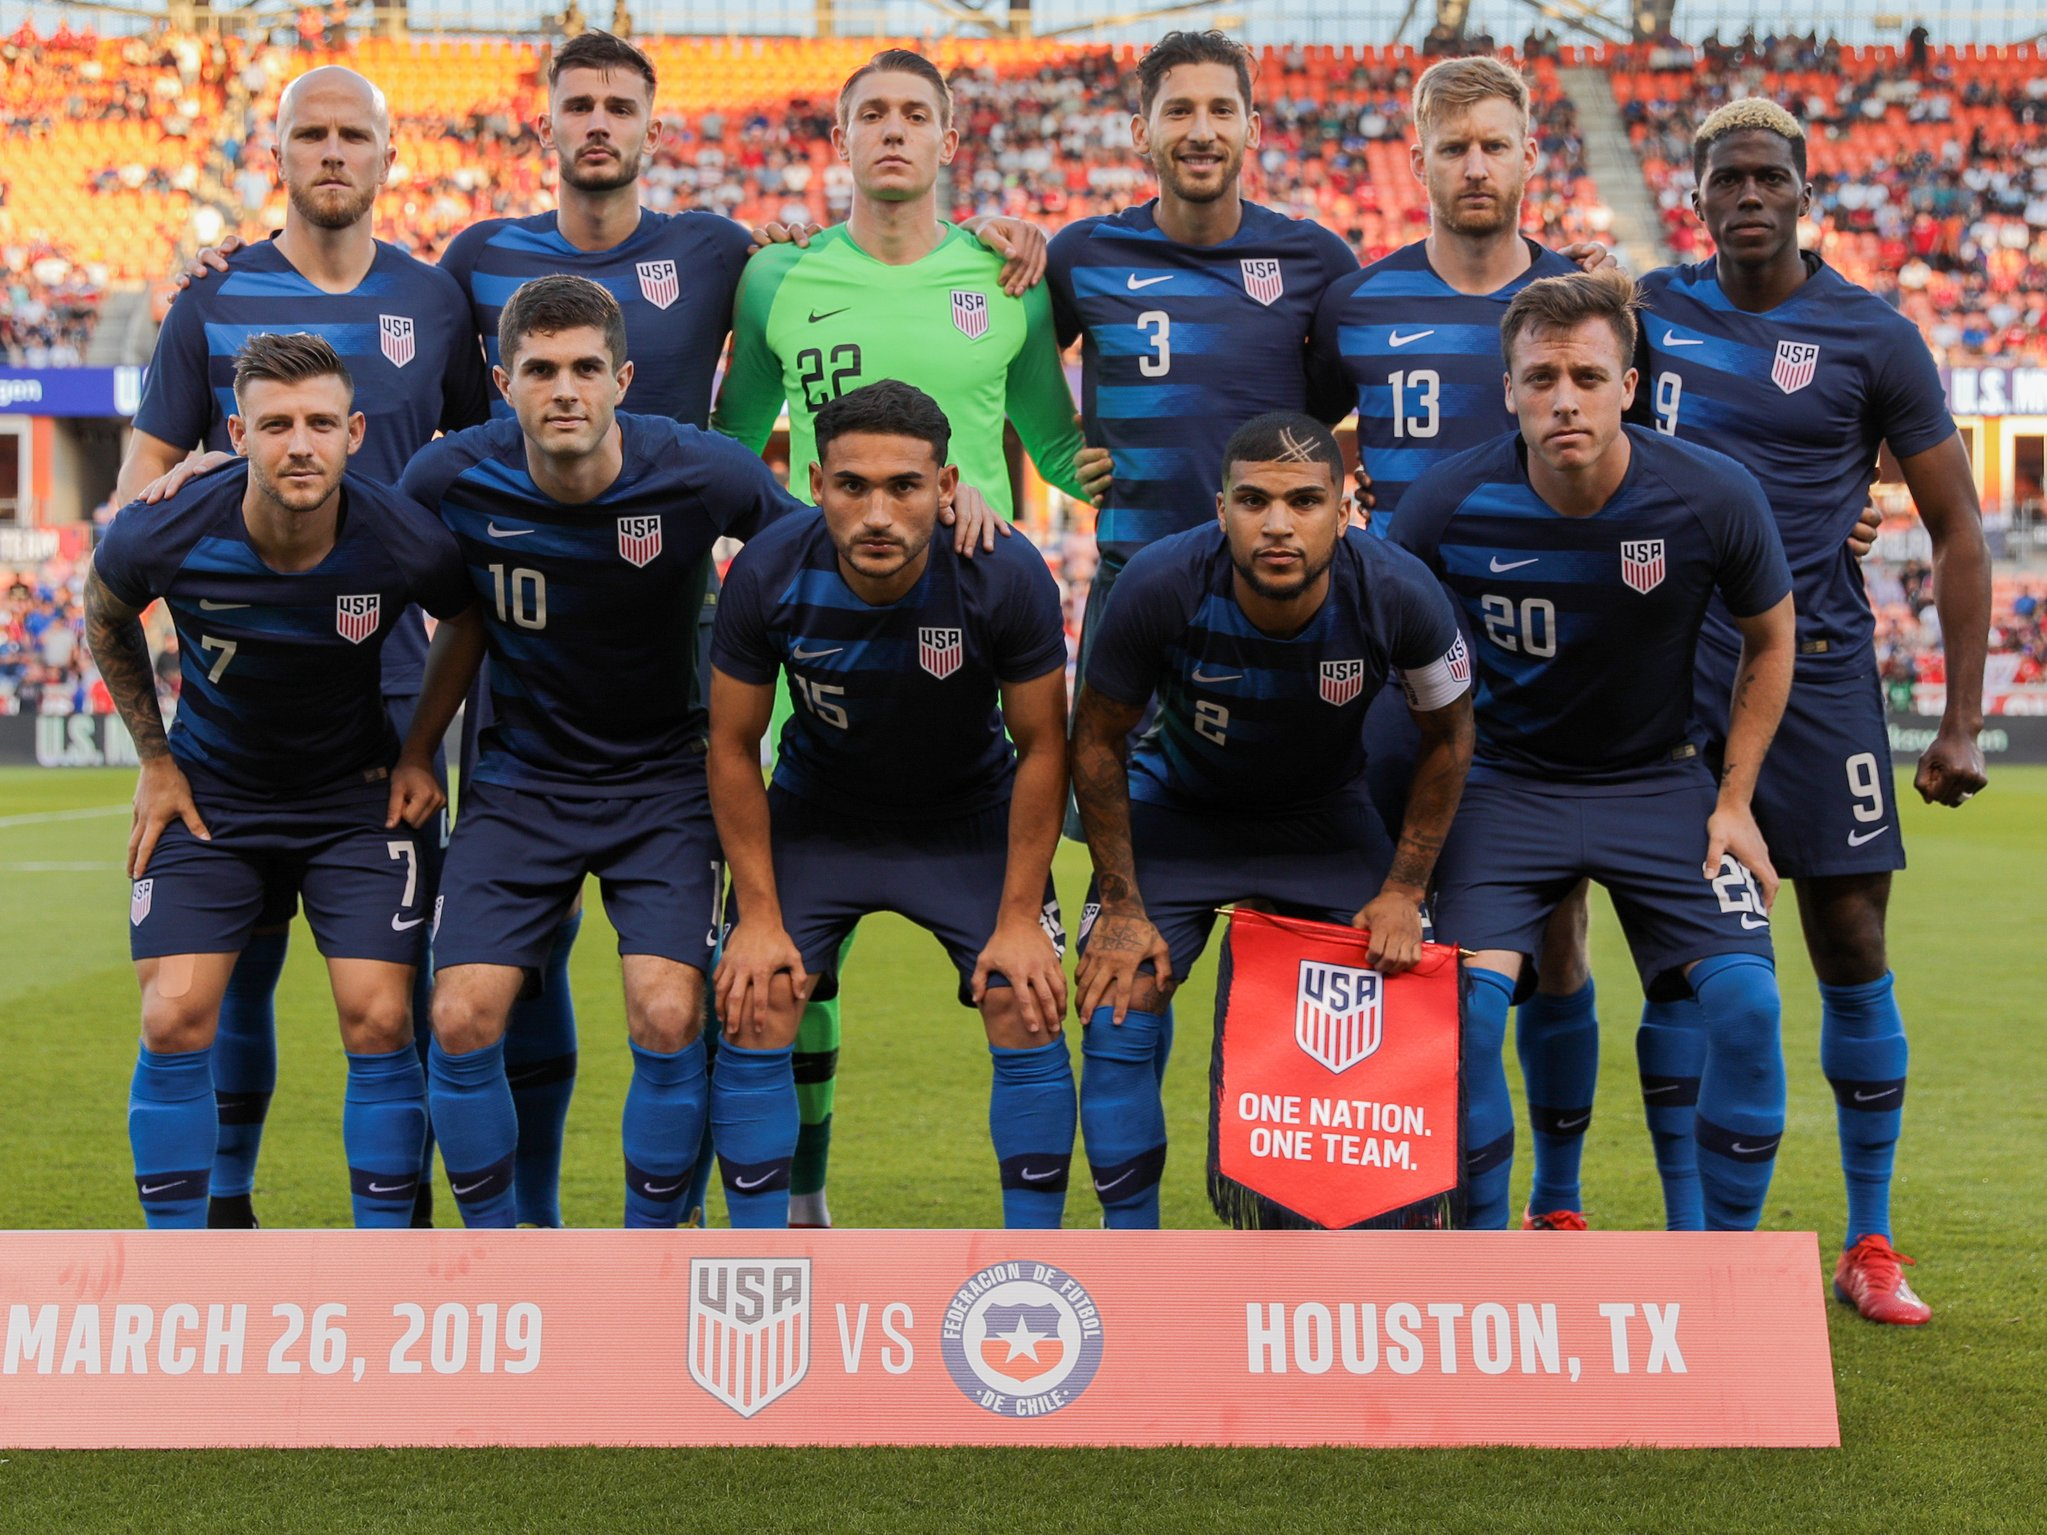 A recent iteration of the US Men's National Team, Photo Courtesy of USMNT